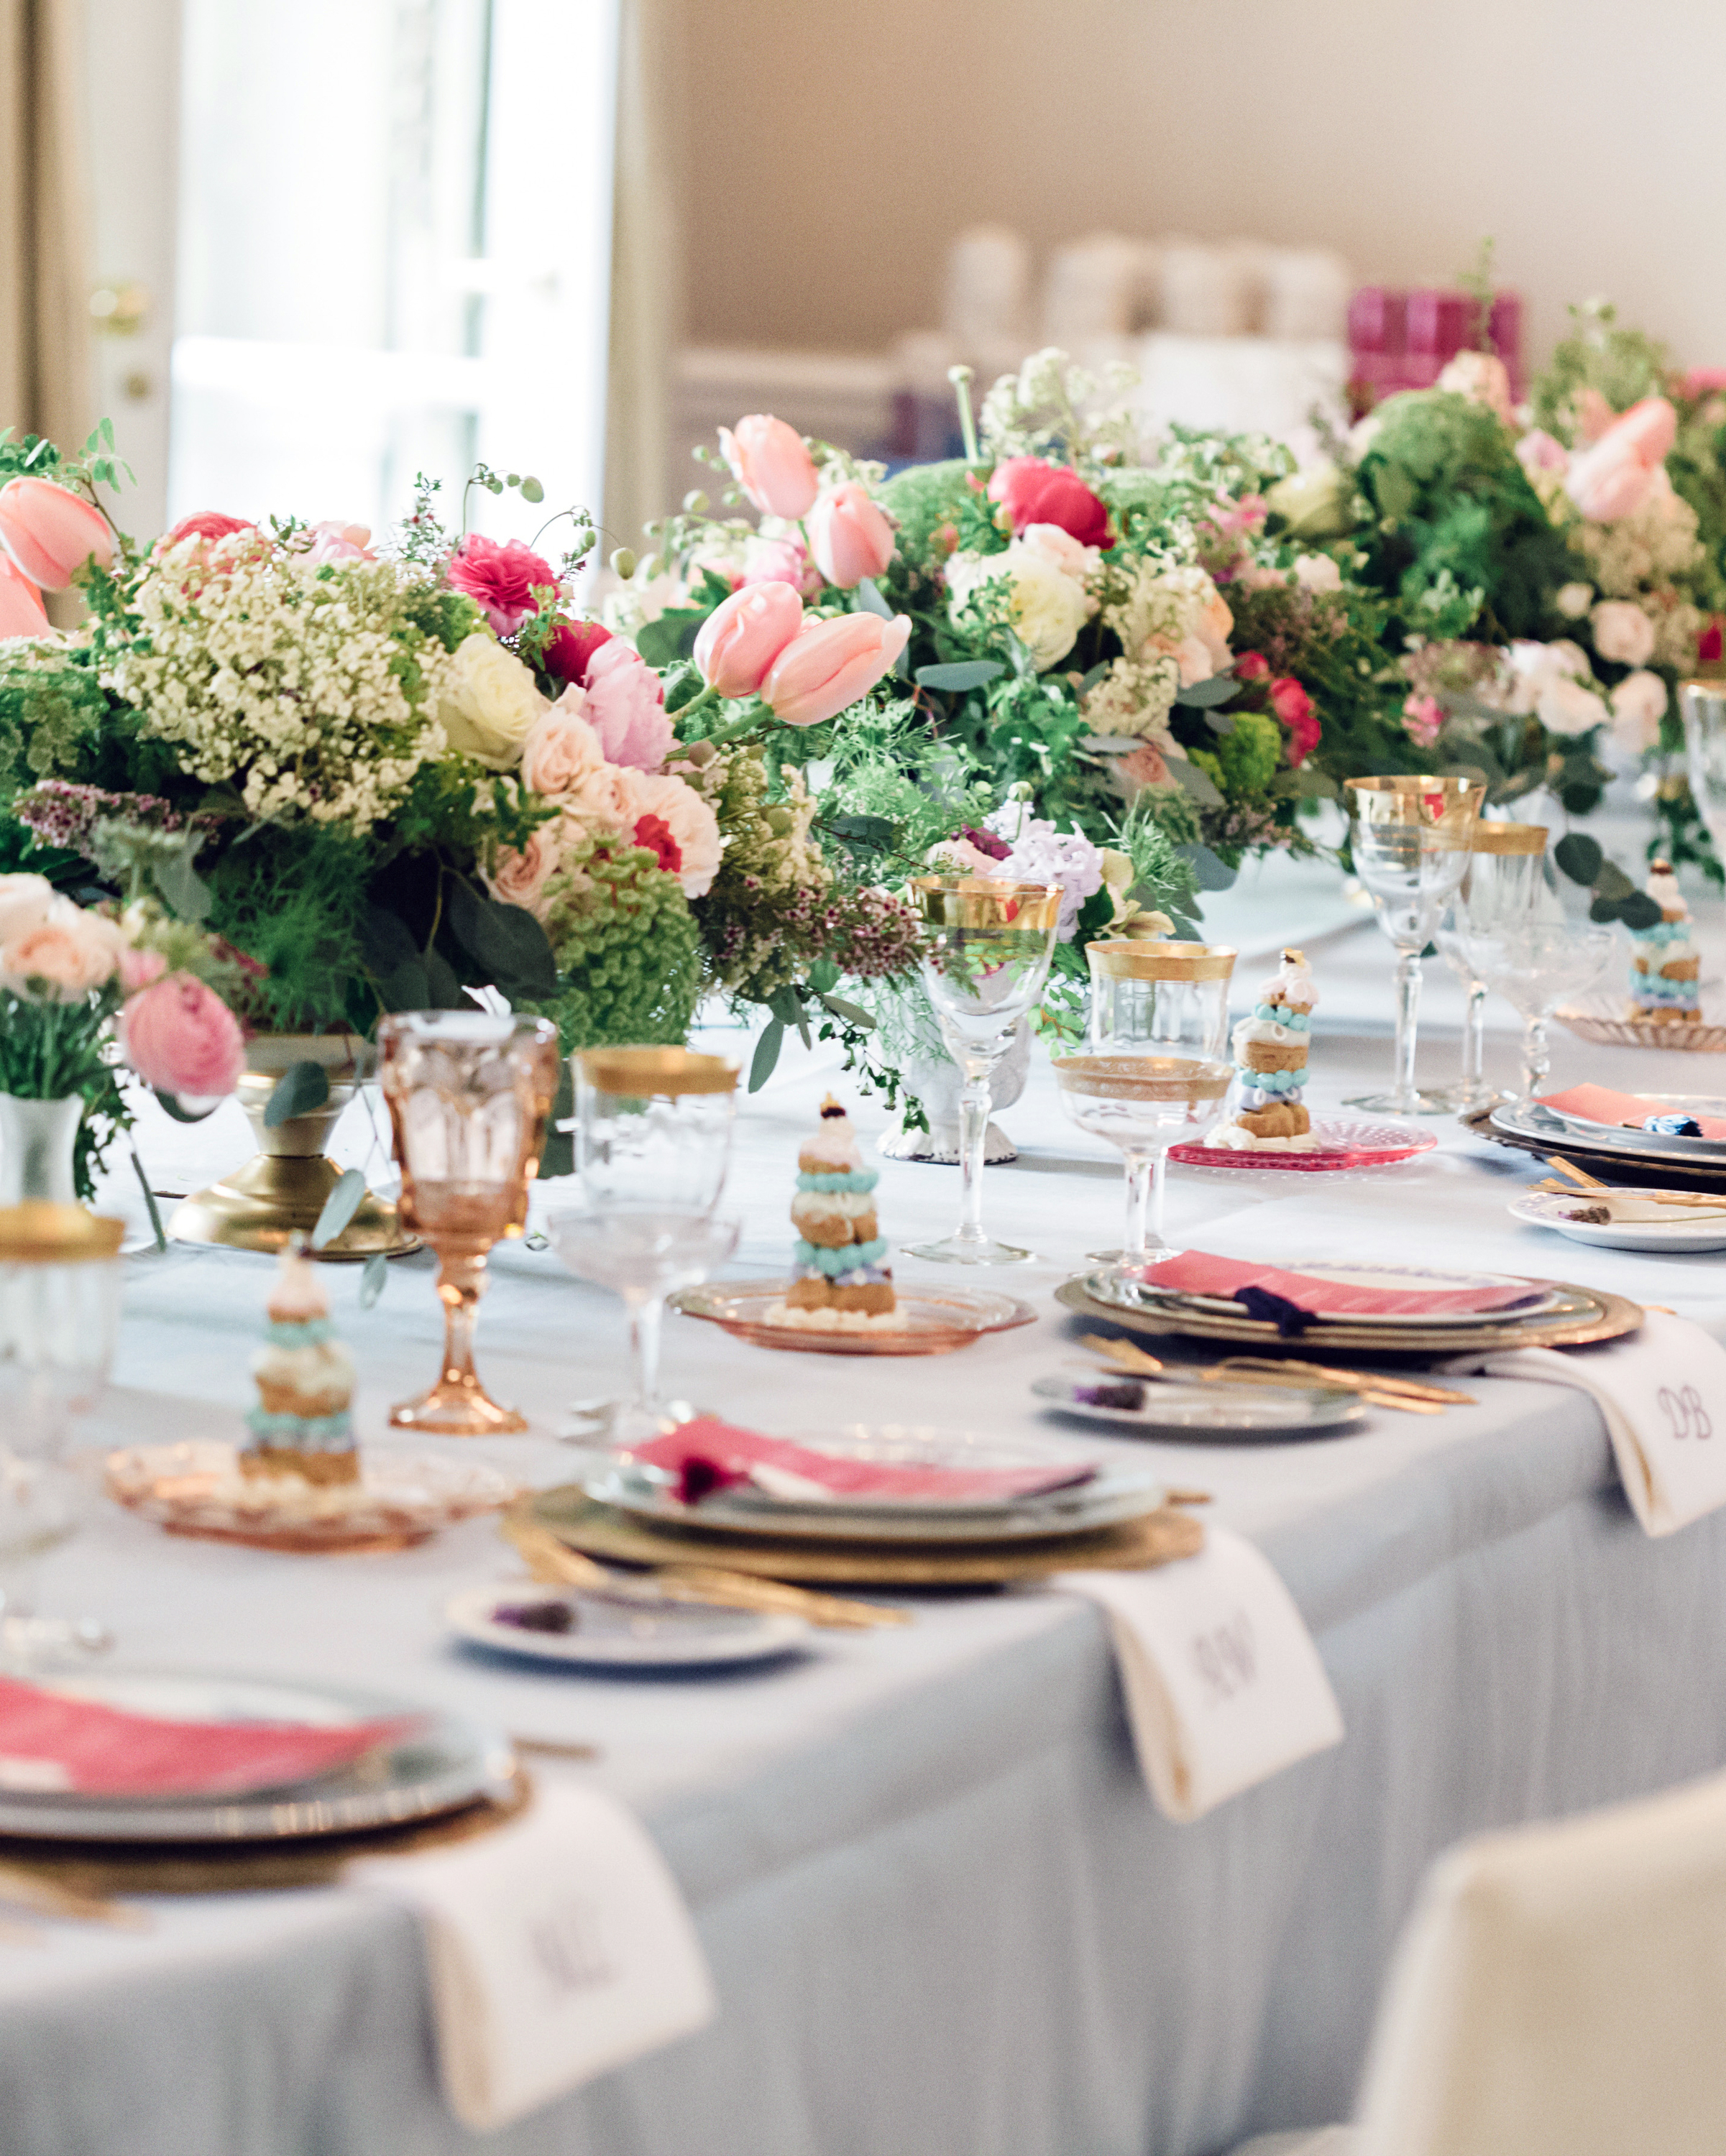 Wedding Tables Ideas: 25 Bridal Shower Centerpieces The Bride-to-Be Will Love